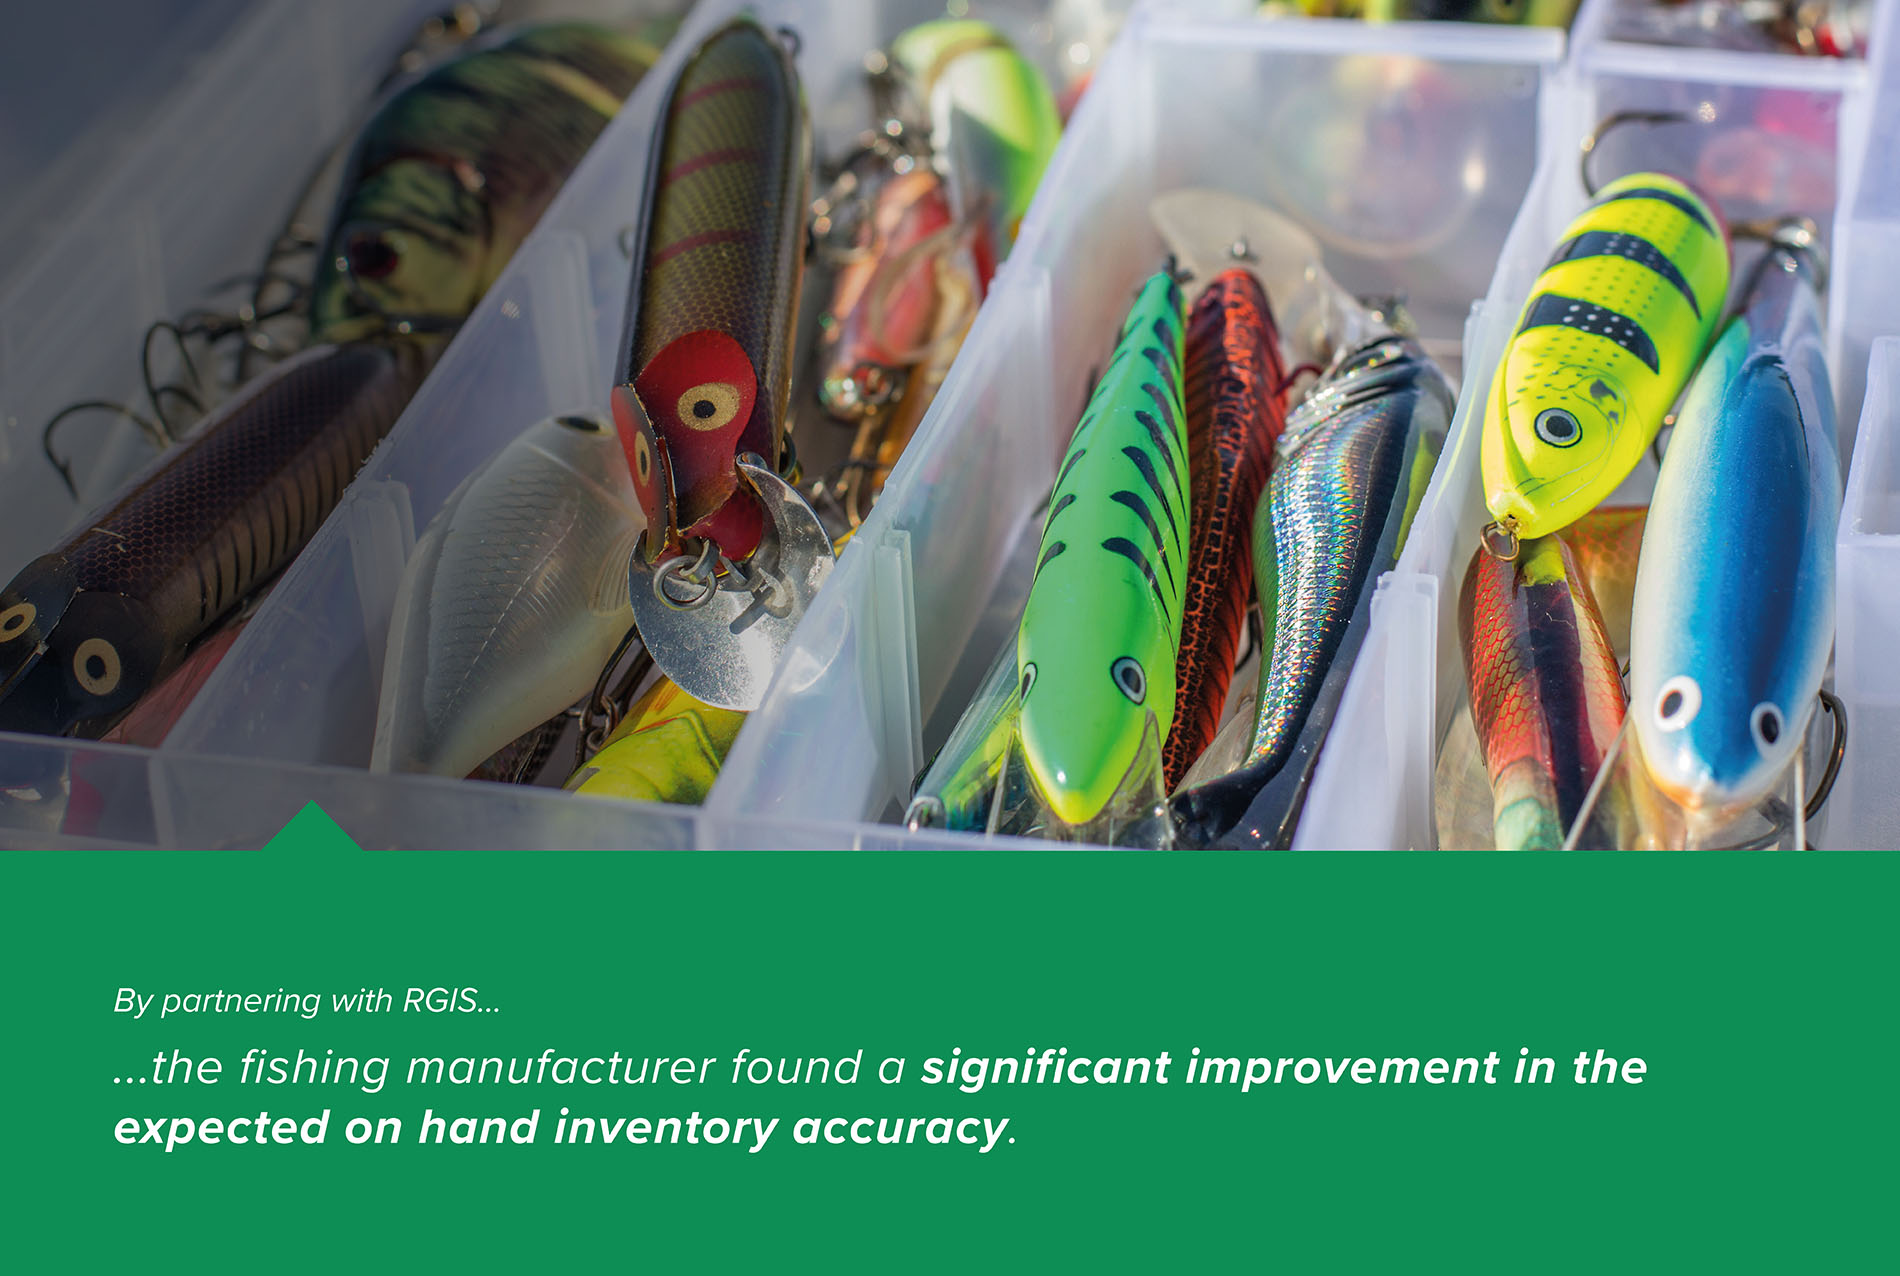 Third Party Distribution Center Inventory Count for Better Stock Control